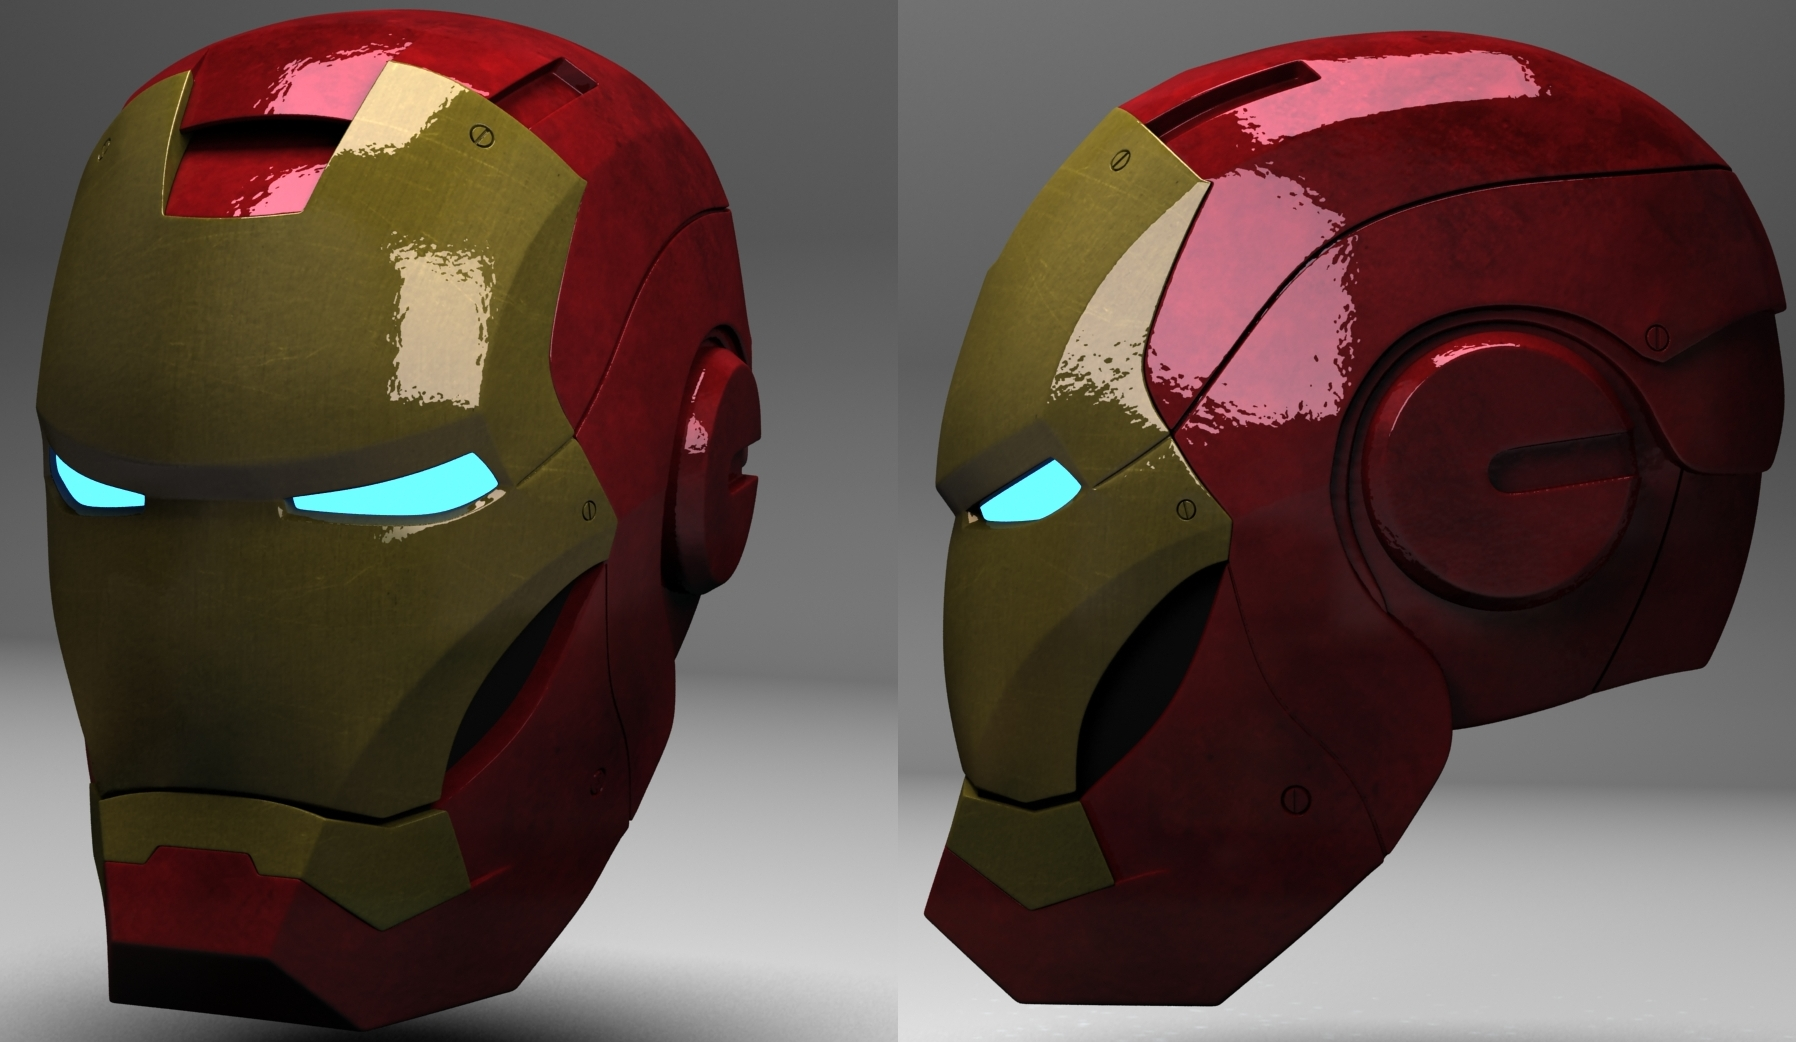 Iron Man helmet image - 3D Artists Group - Mod DB